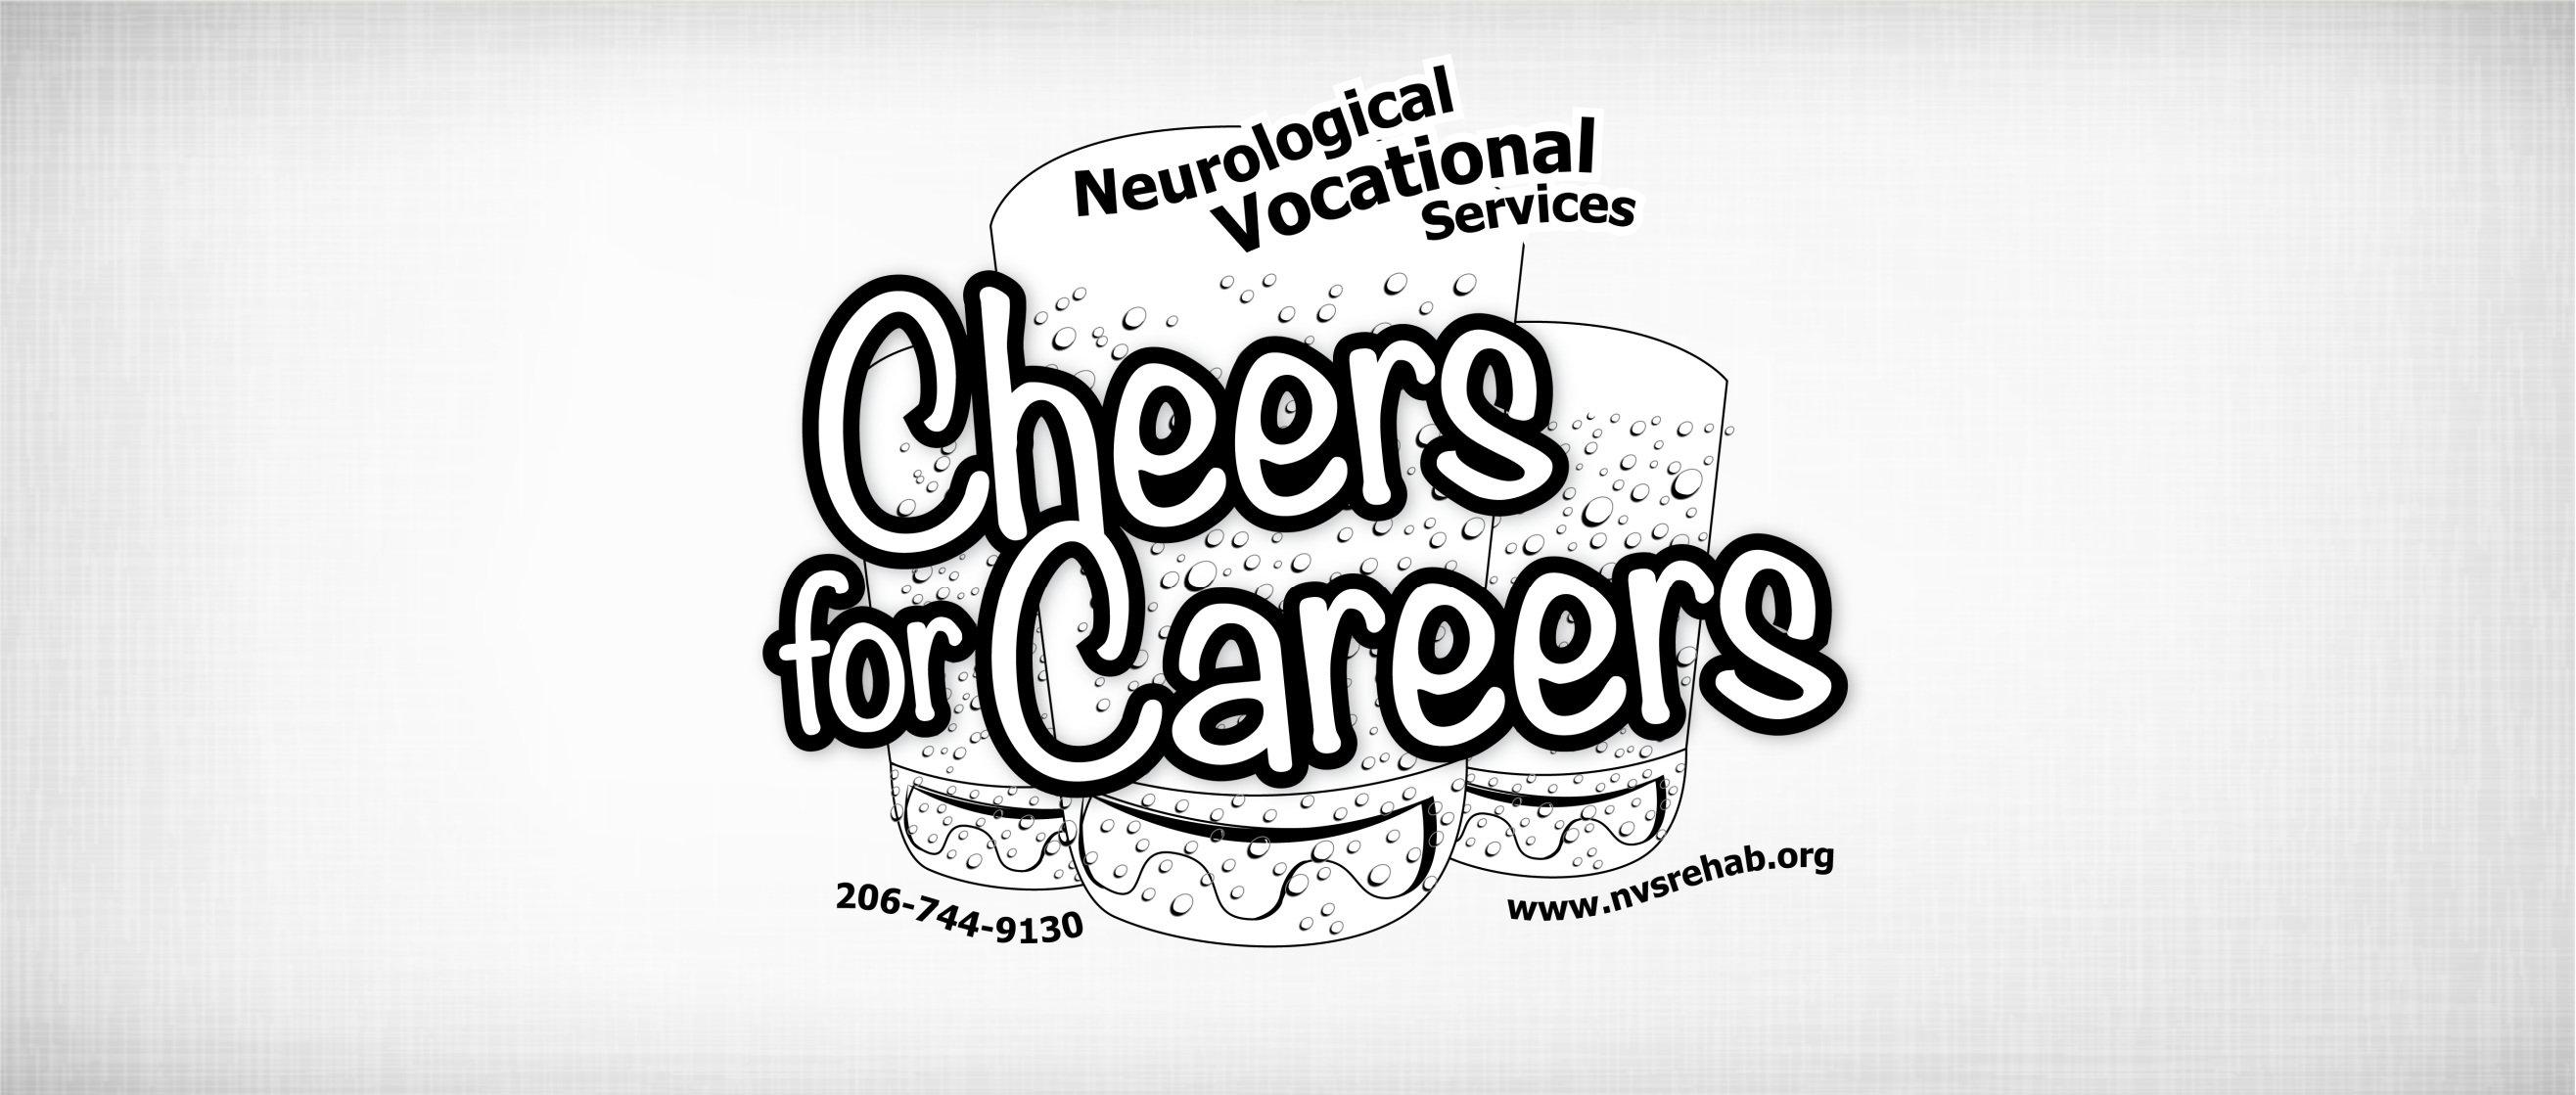 Cheer for Careers!